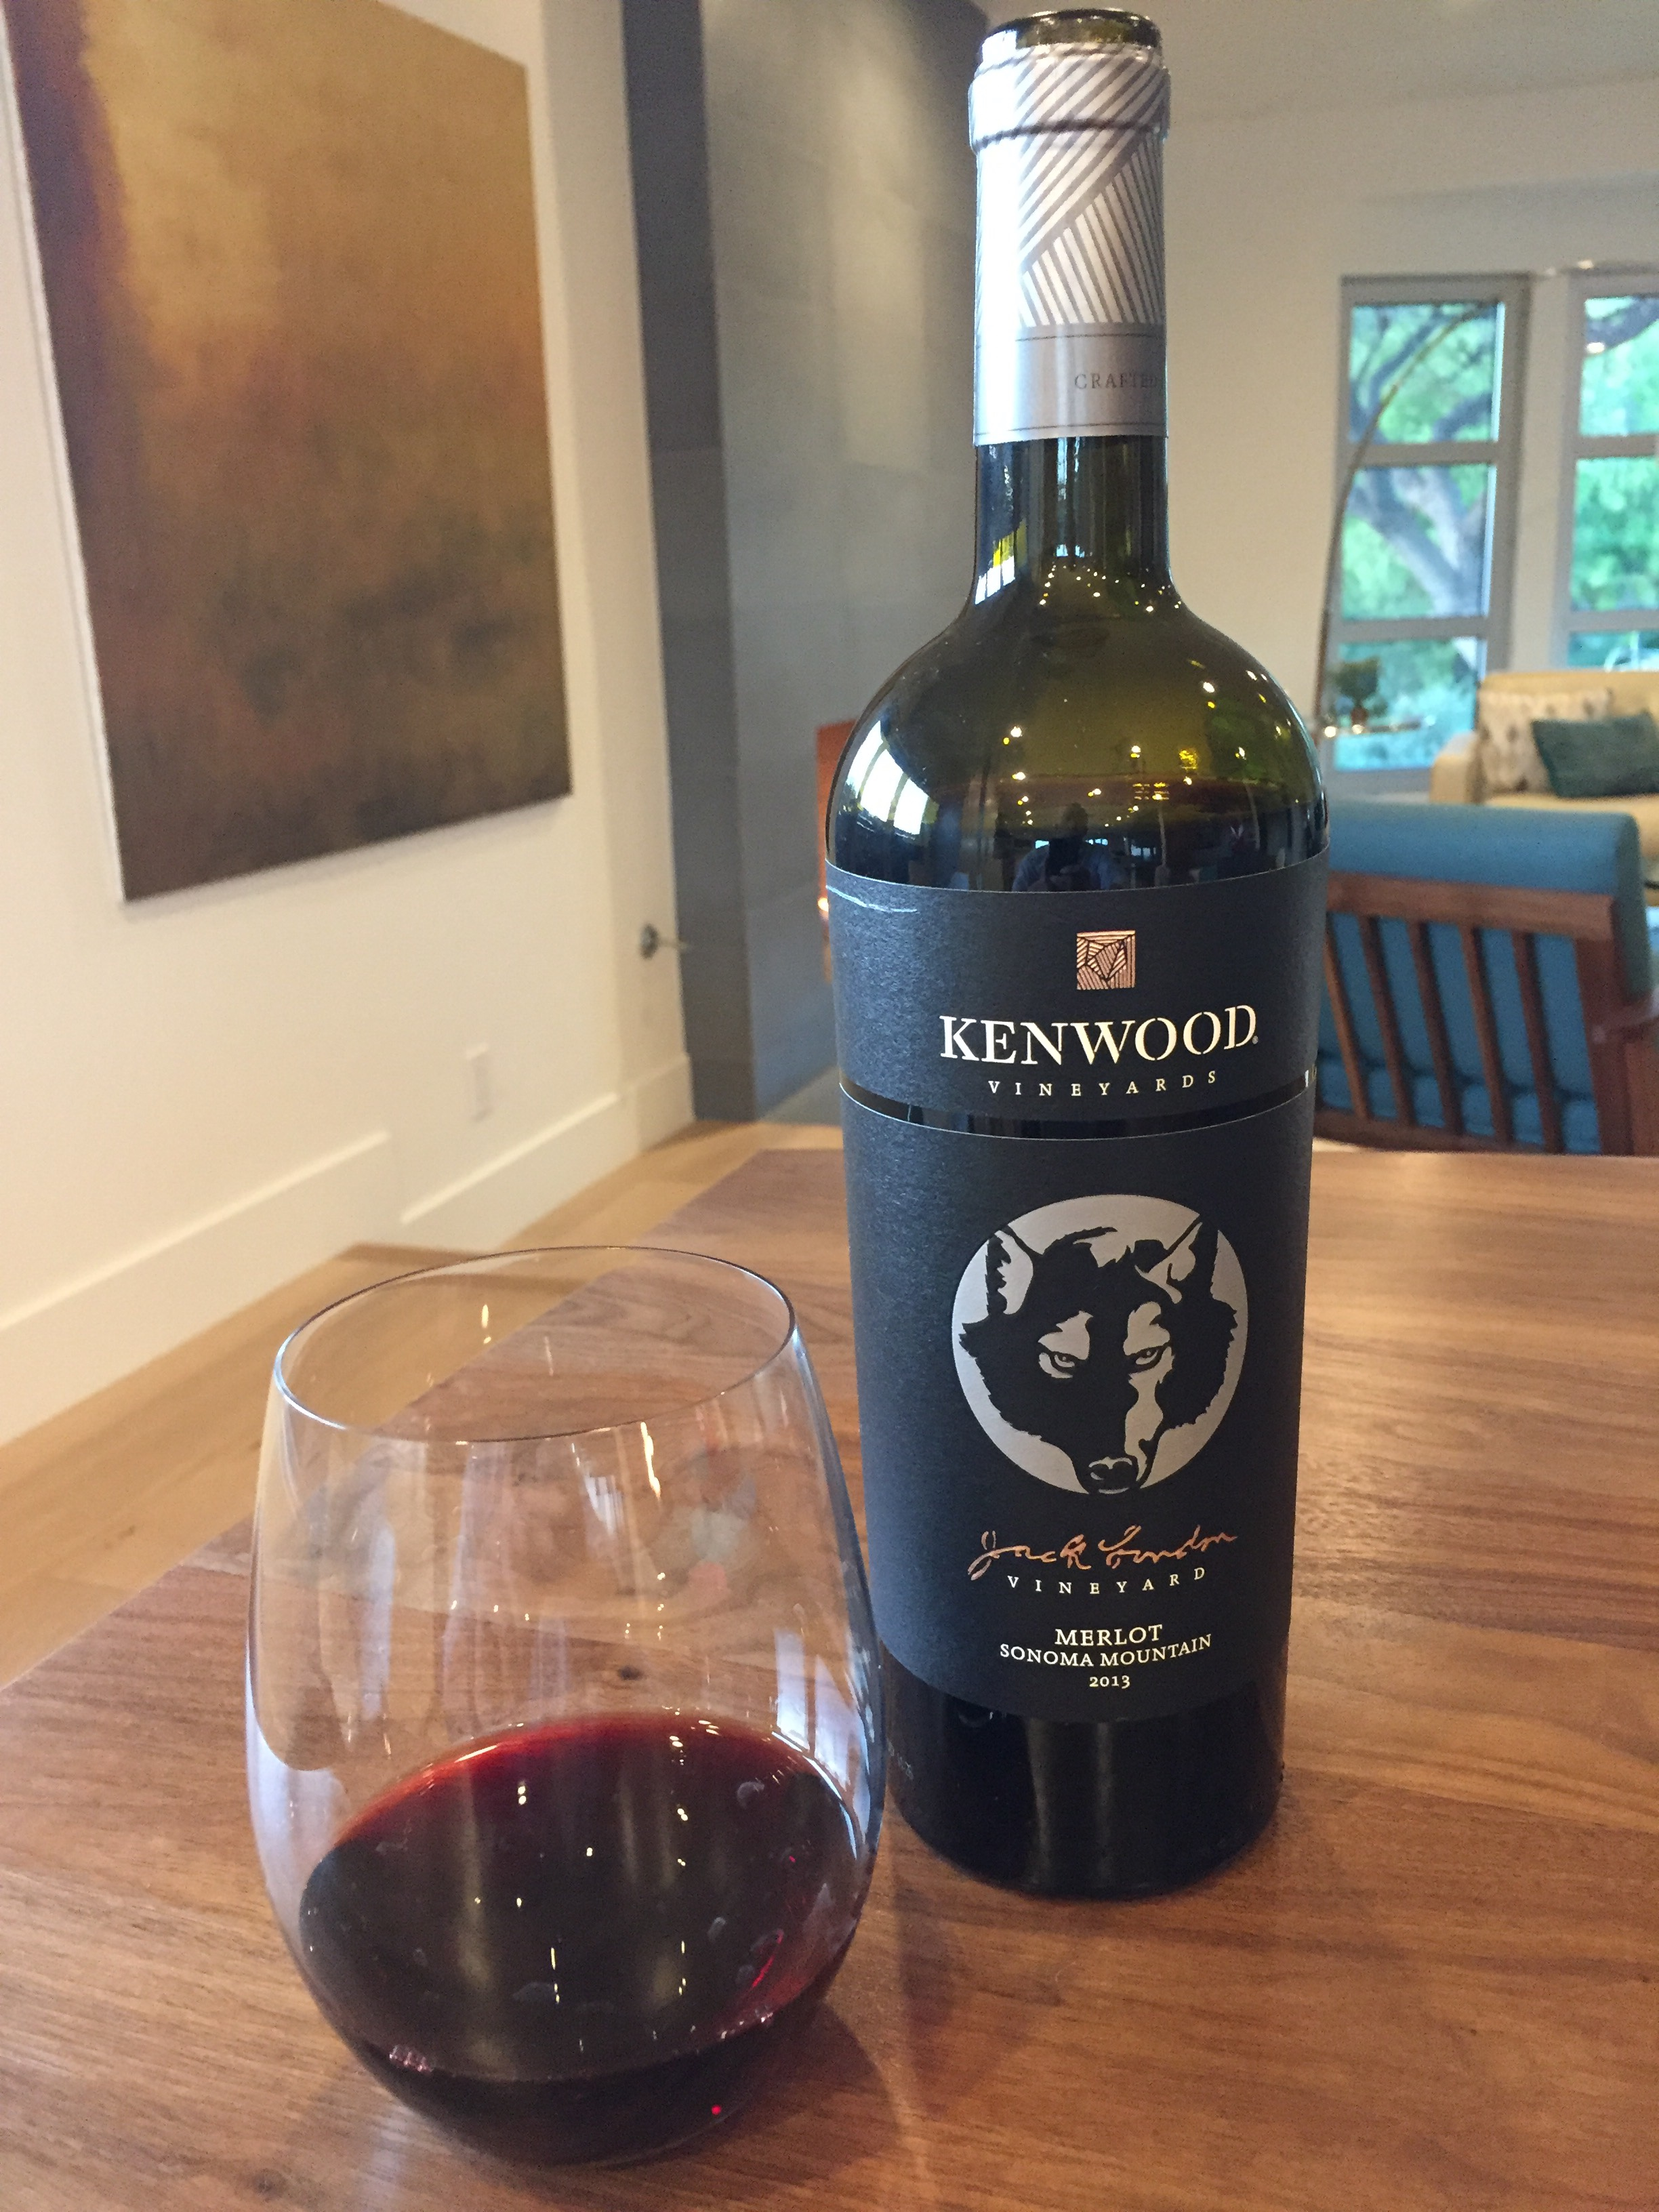 2013 Kenwood Jack London Vineyard Merlot, Sonoma Mountain